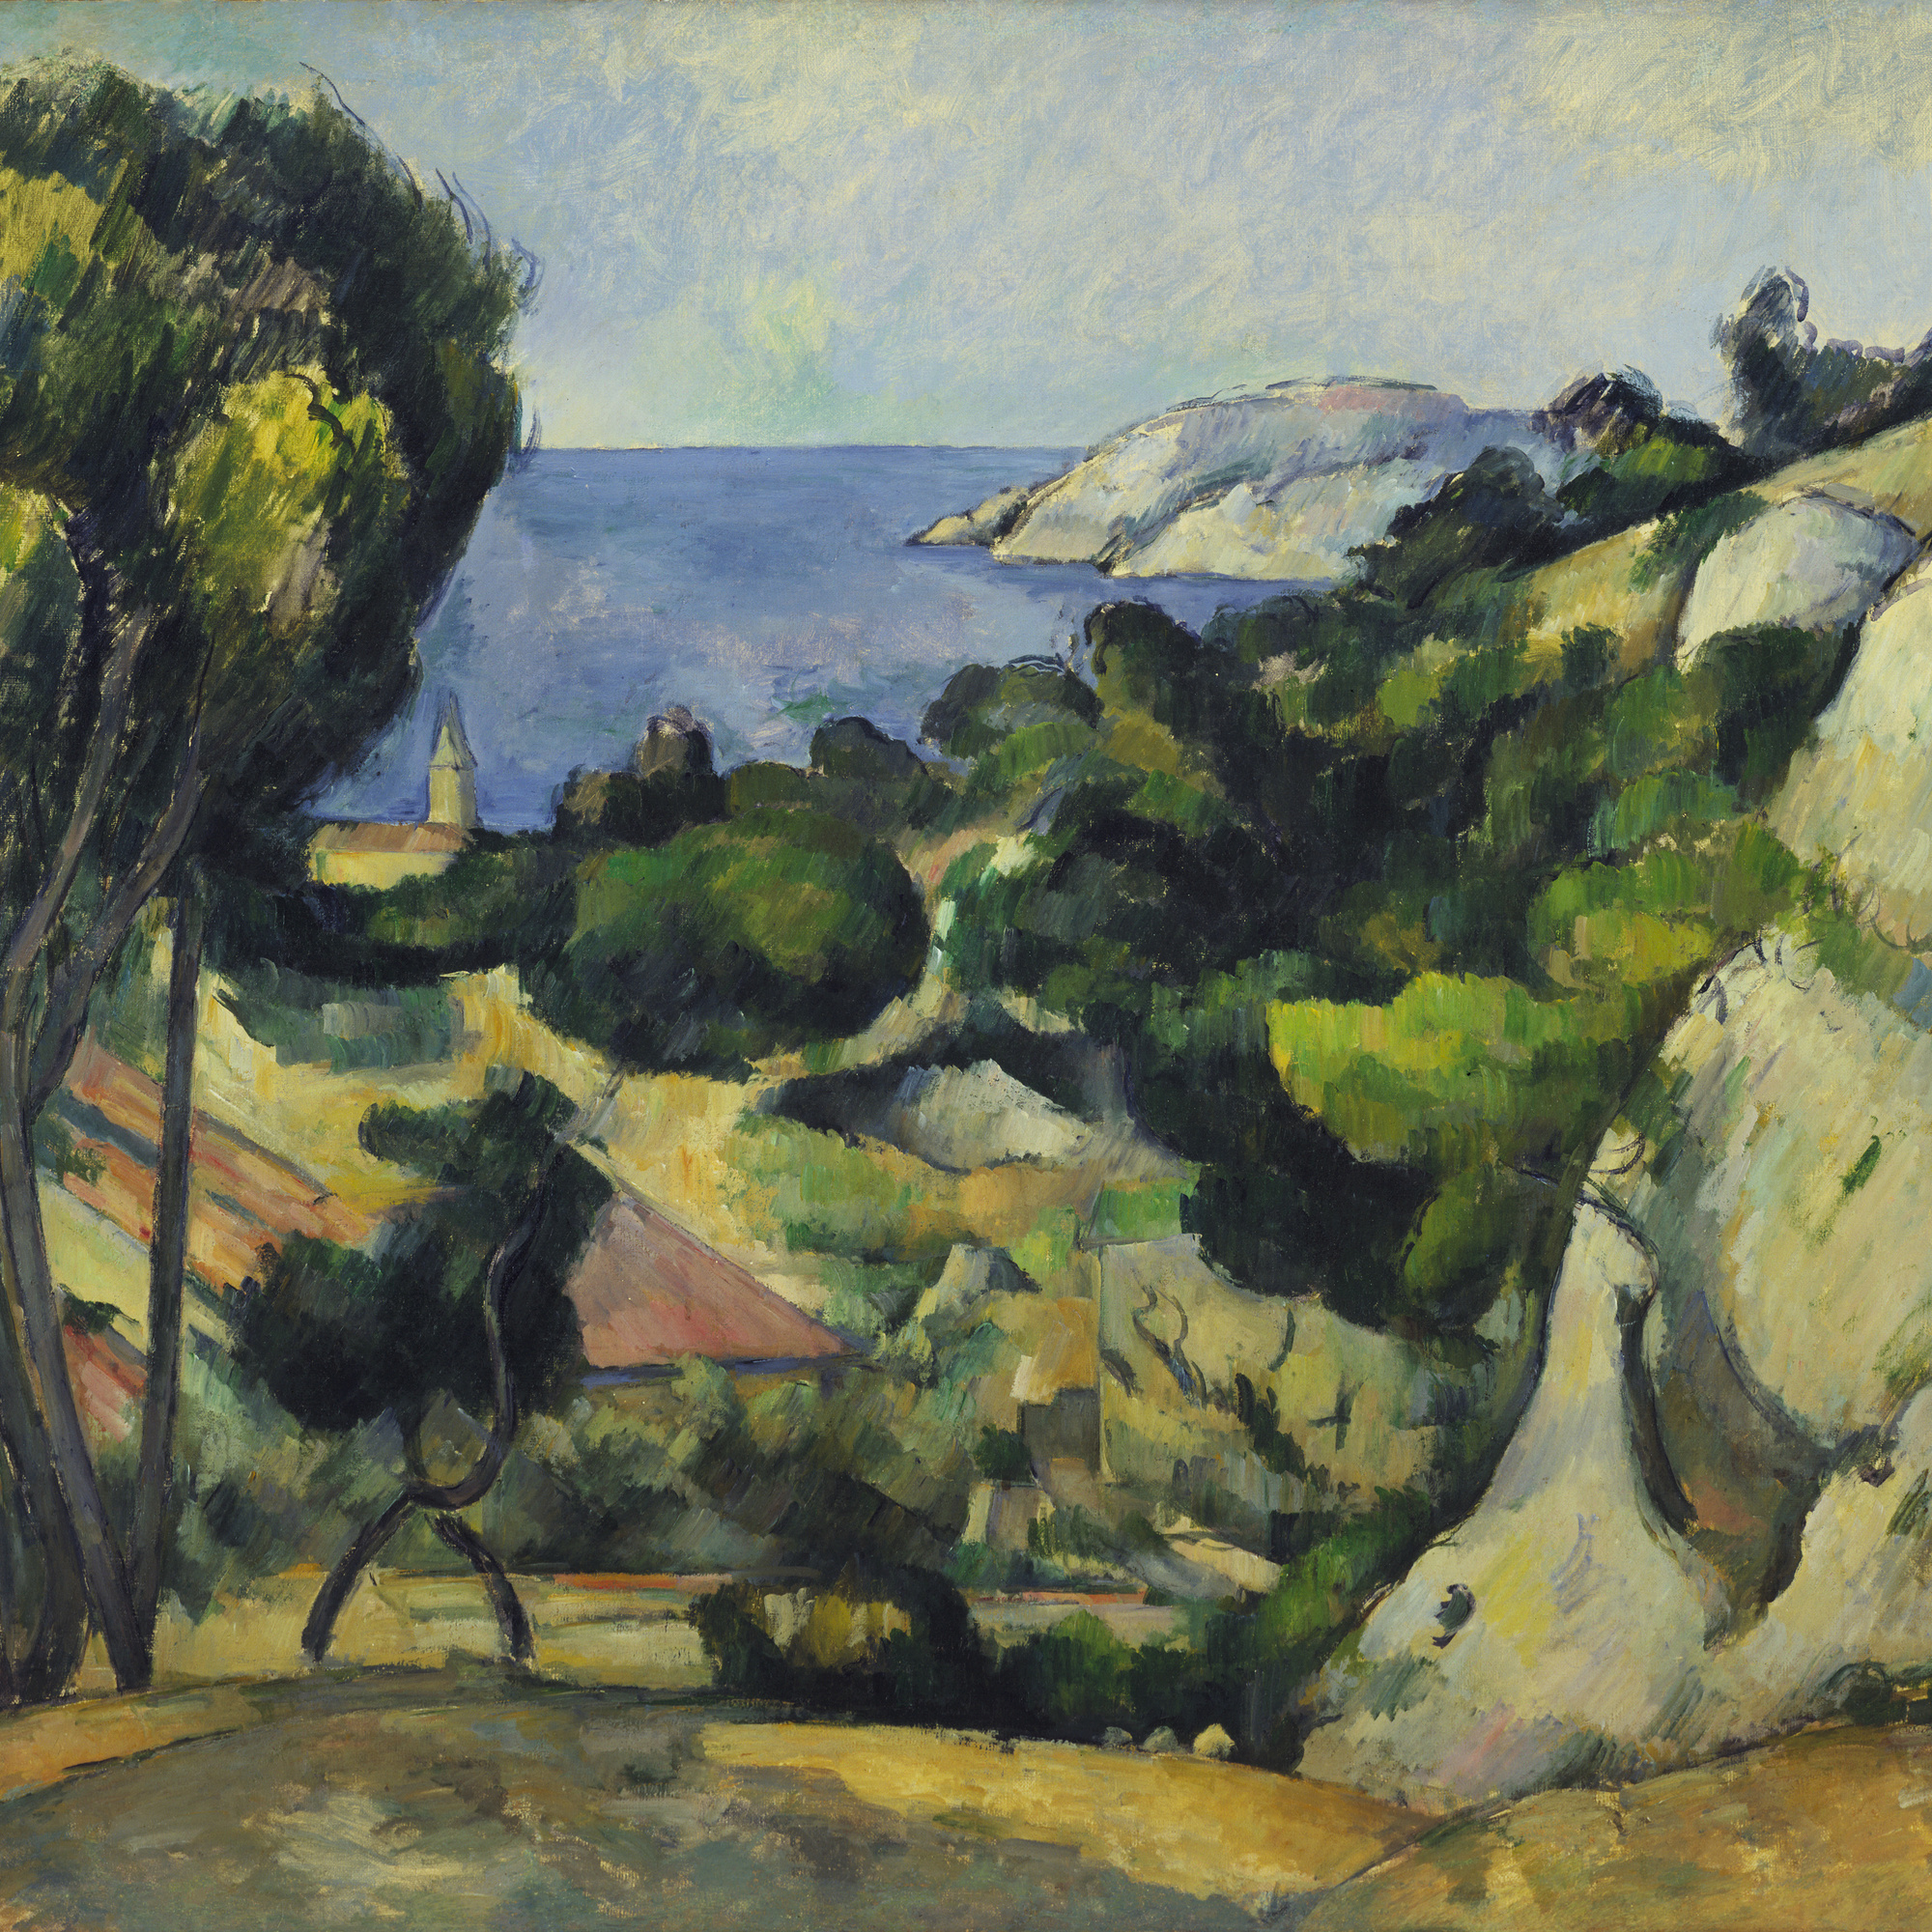 Paul Cézanne. *L'Estaque. 1879–83. Oil on canvas, 31 1/2 × 39″ (80.3 × 99.4 cm). The William S. Paley Collection